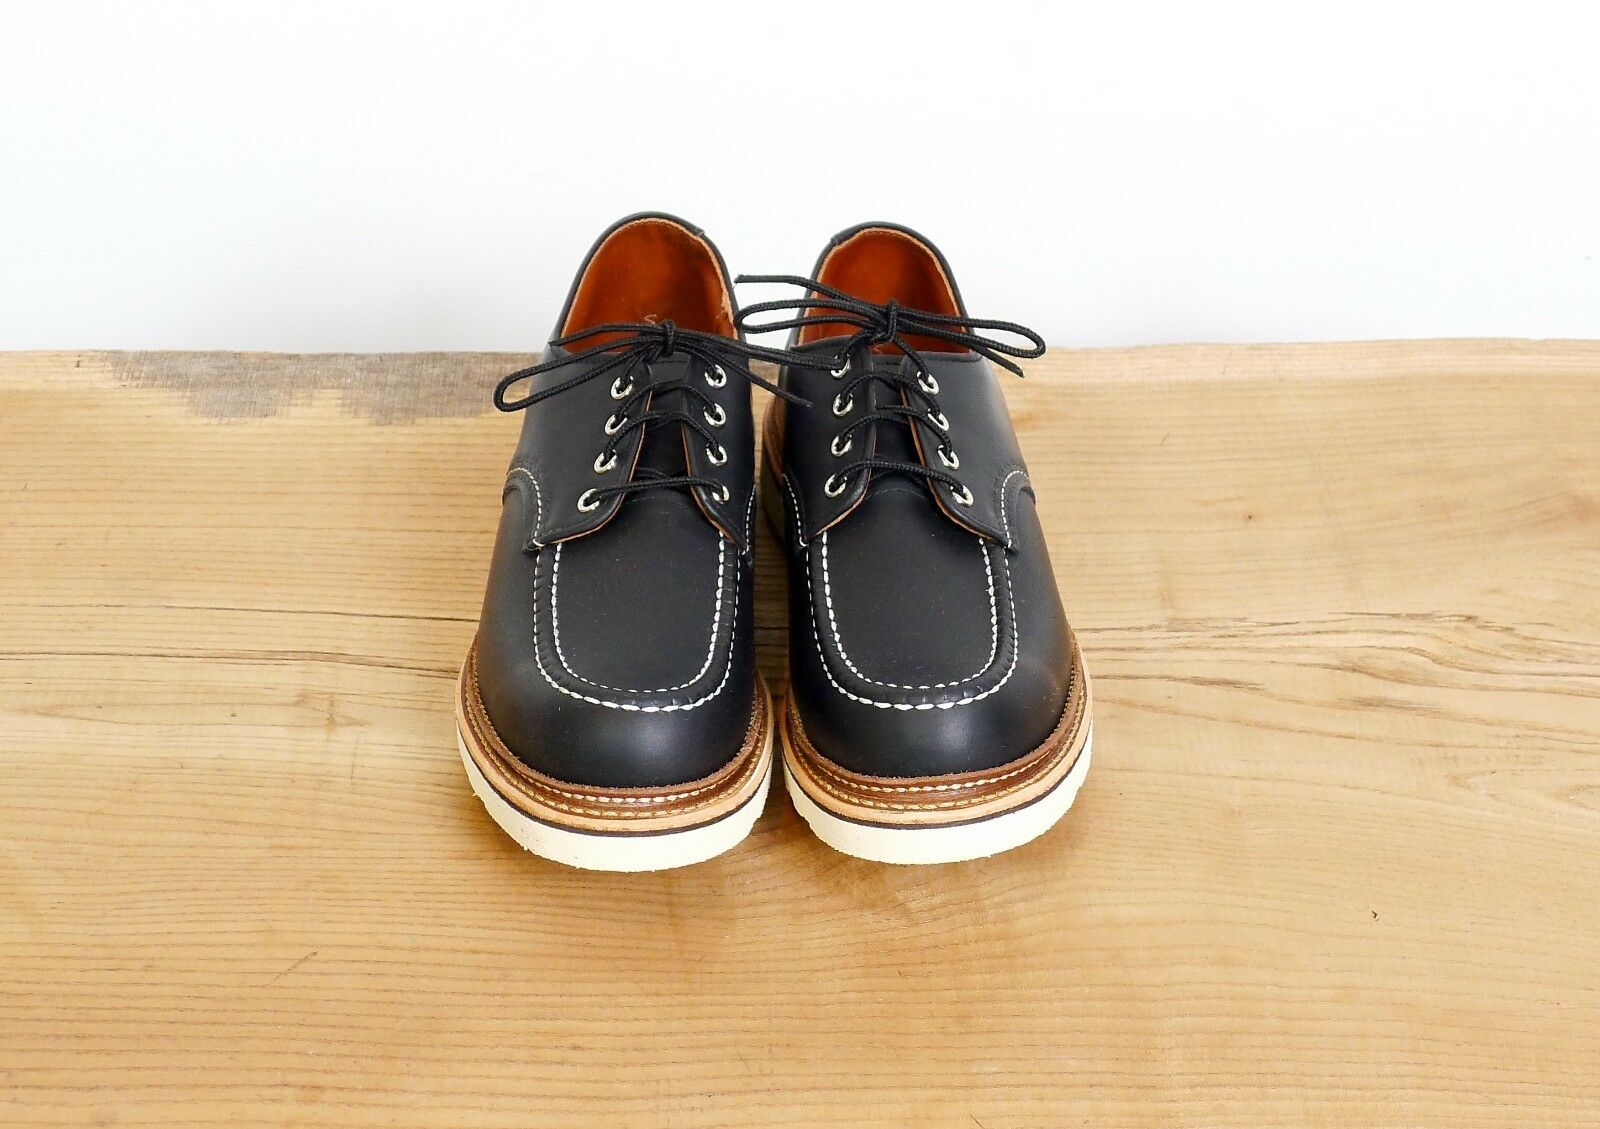 Red Wing Heritage 8106-2 Black Oxford shoes NIB See Sizes